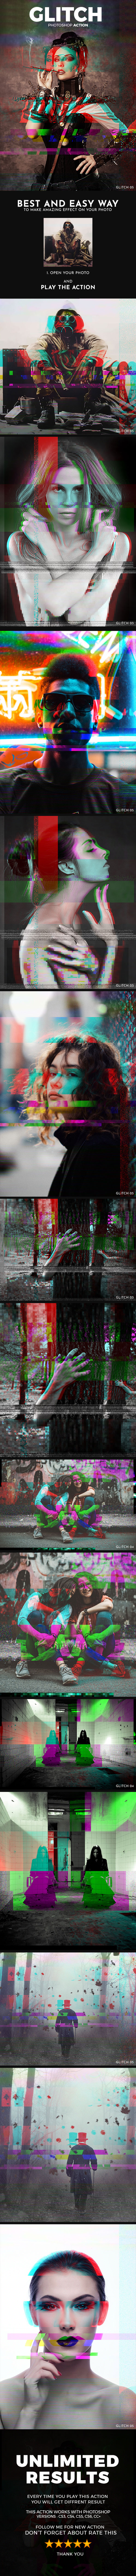 GraphicRiver Glitch Photoshop Action 20893629